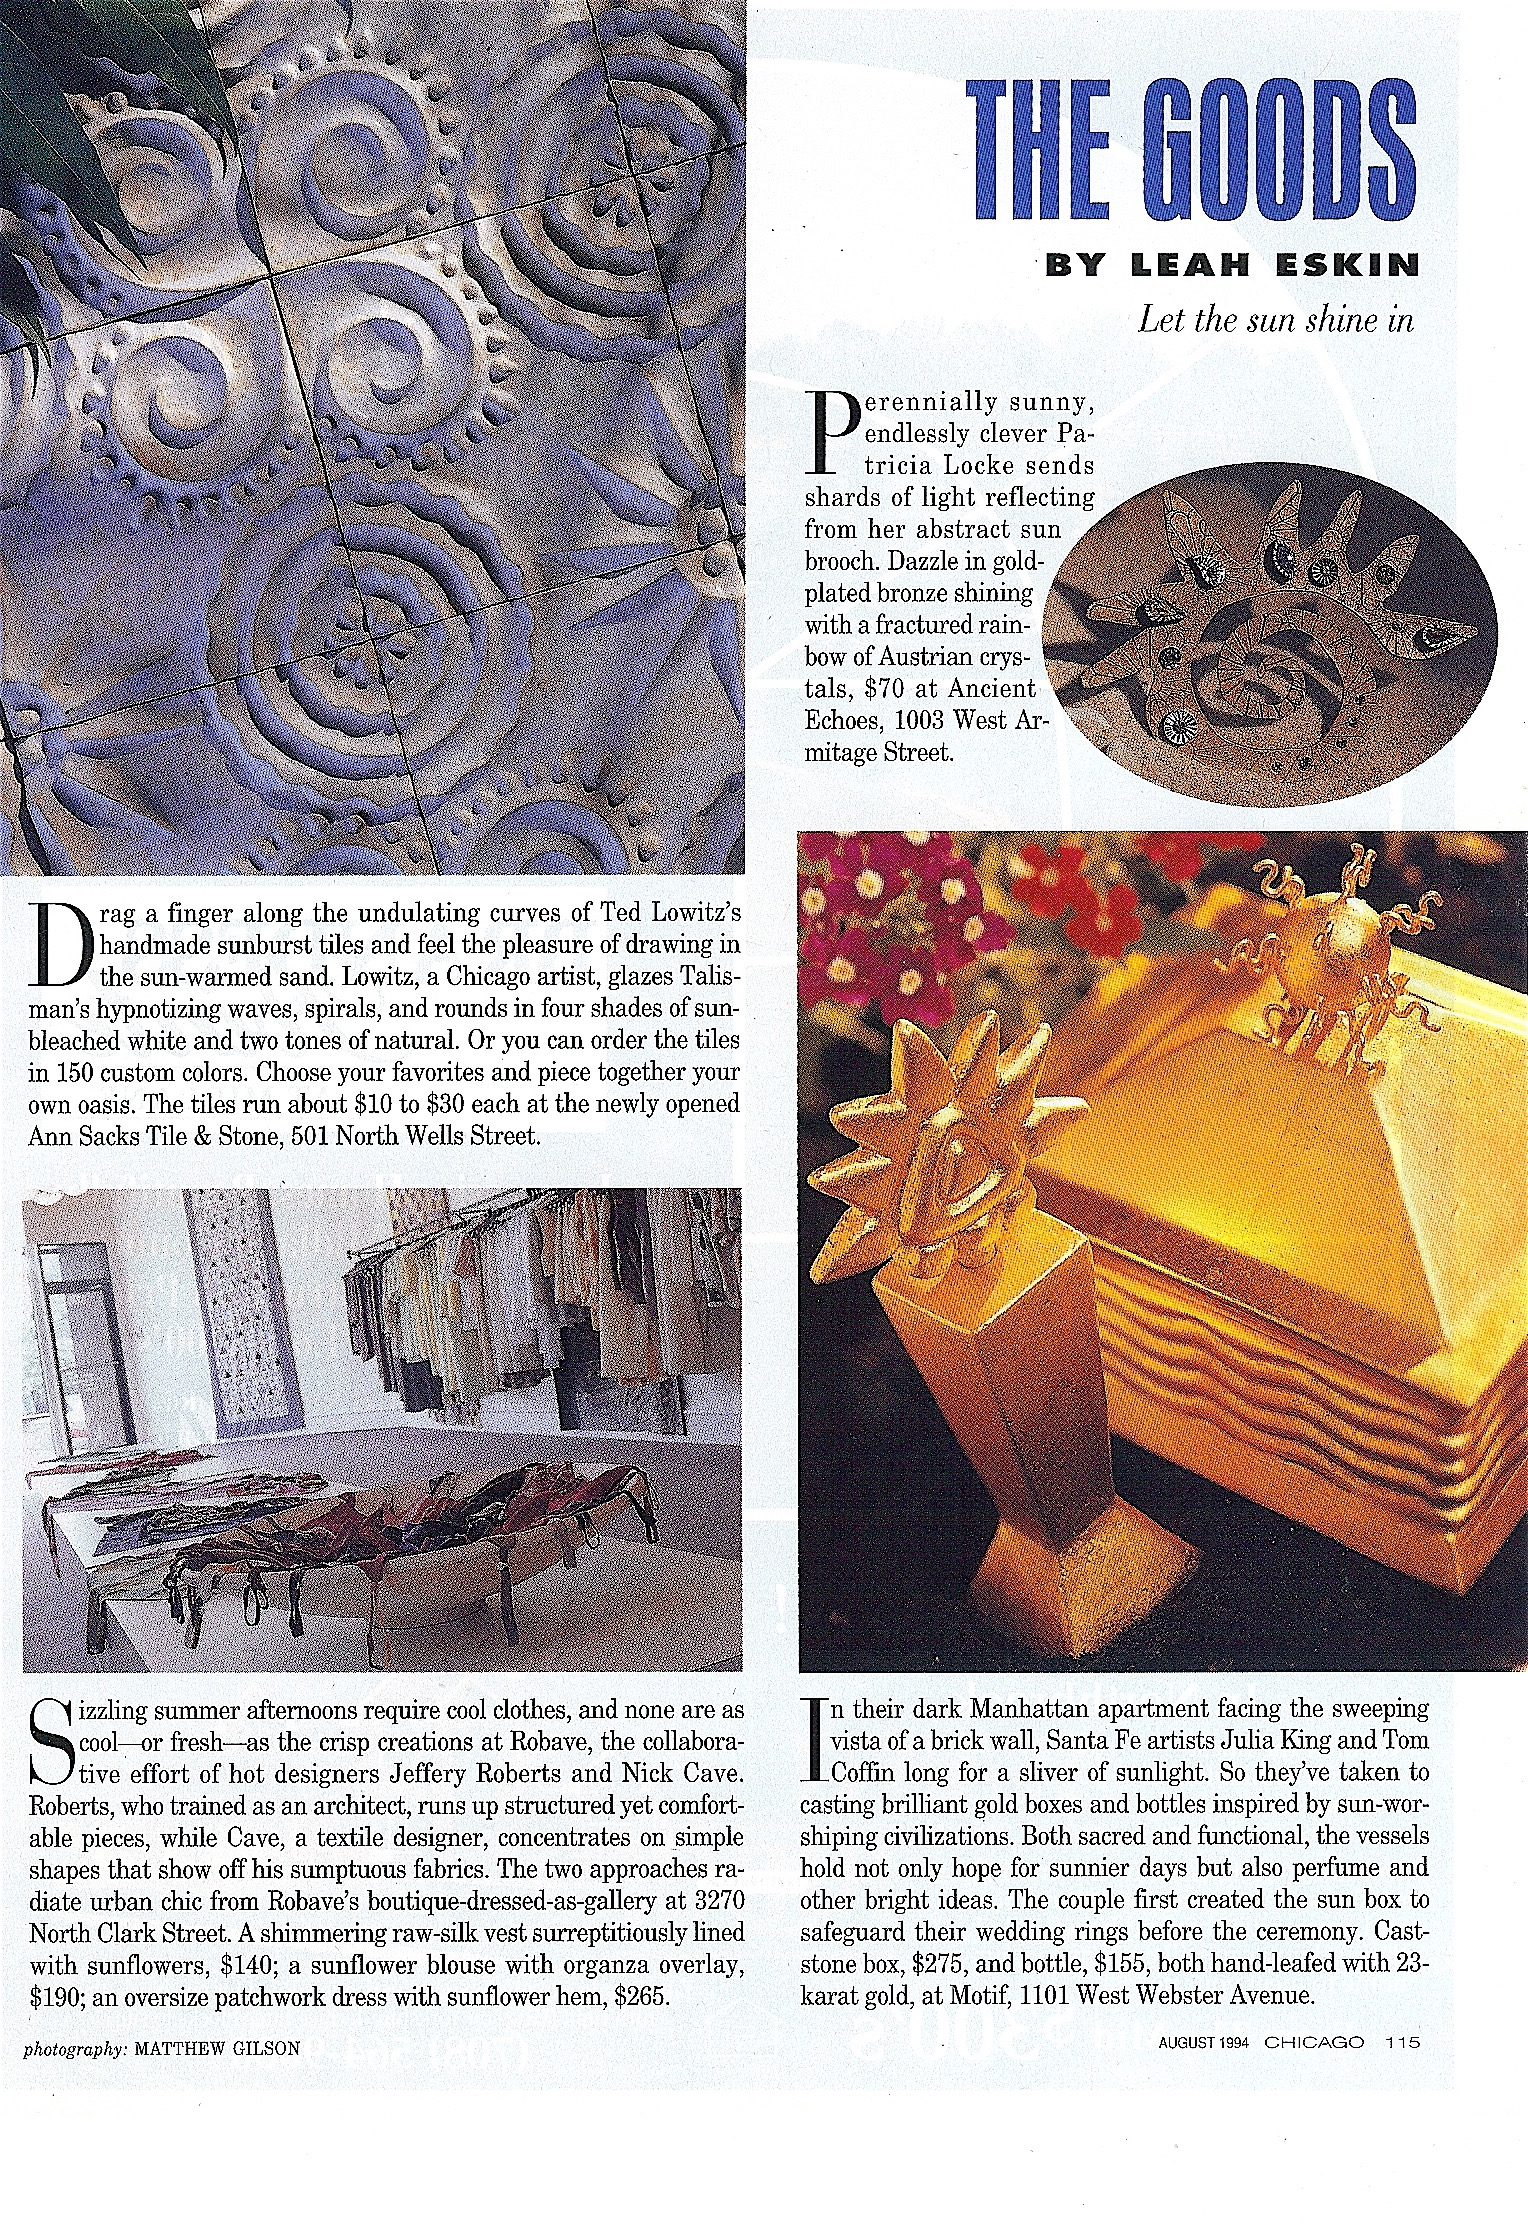 Coffin & King Press - Coffin & King Gilded Sun Head Box and Golden Idol perfume bottle featured in Chicago Magazine